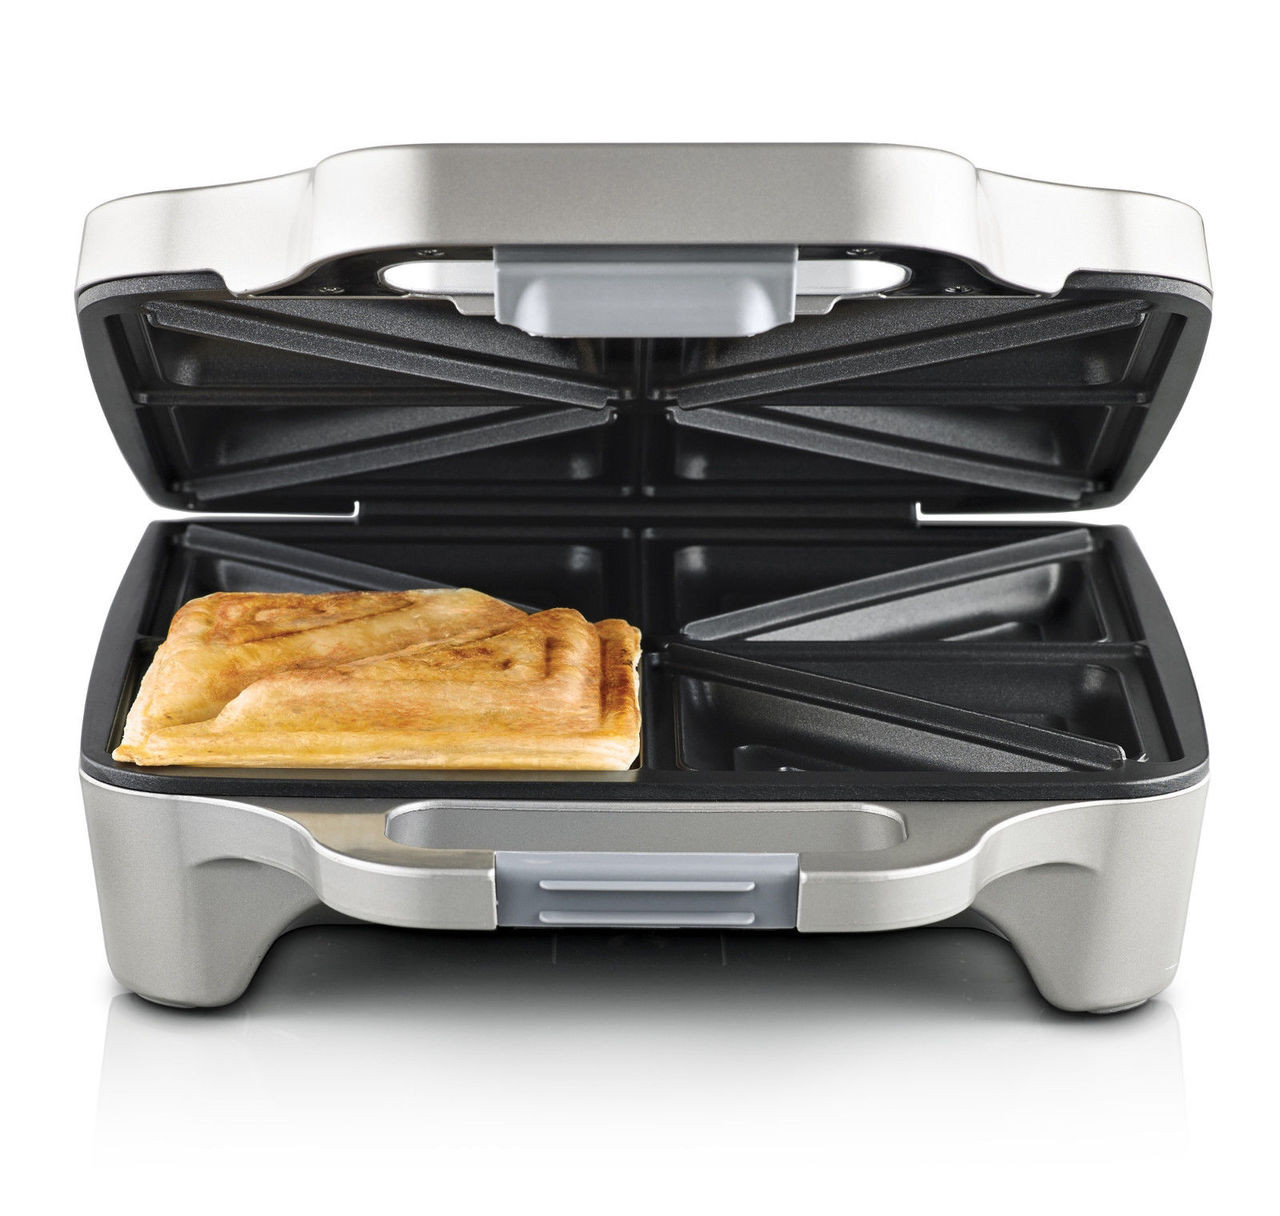 Sunbeam GR6450 Big Fill Toastie™ For 4 Sandwich Maker with Cut & Seal Design